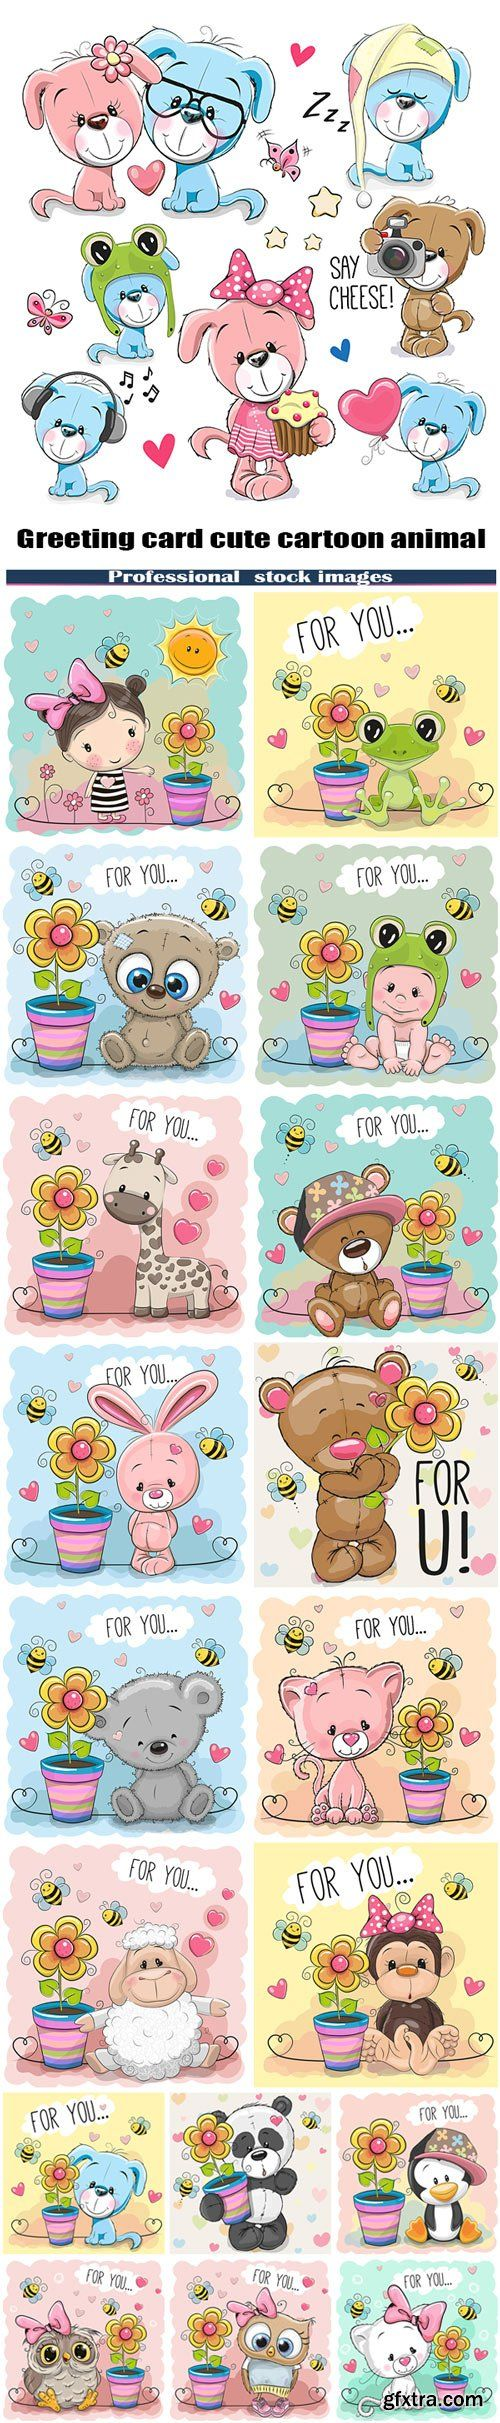 Greeting card cute cartoon animal with a flower